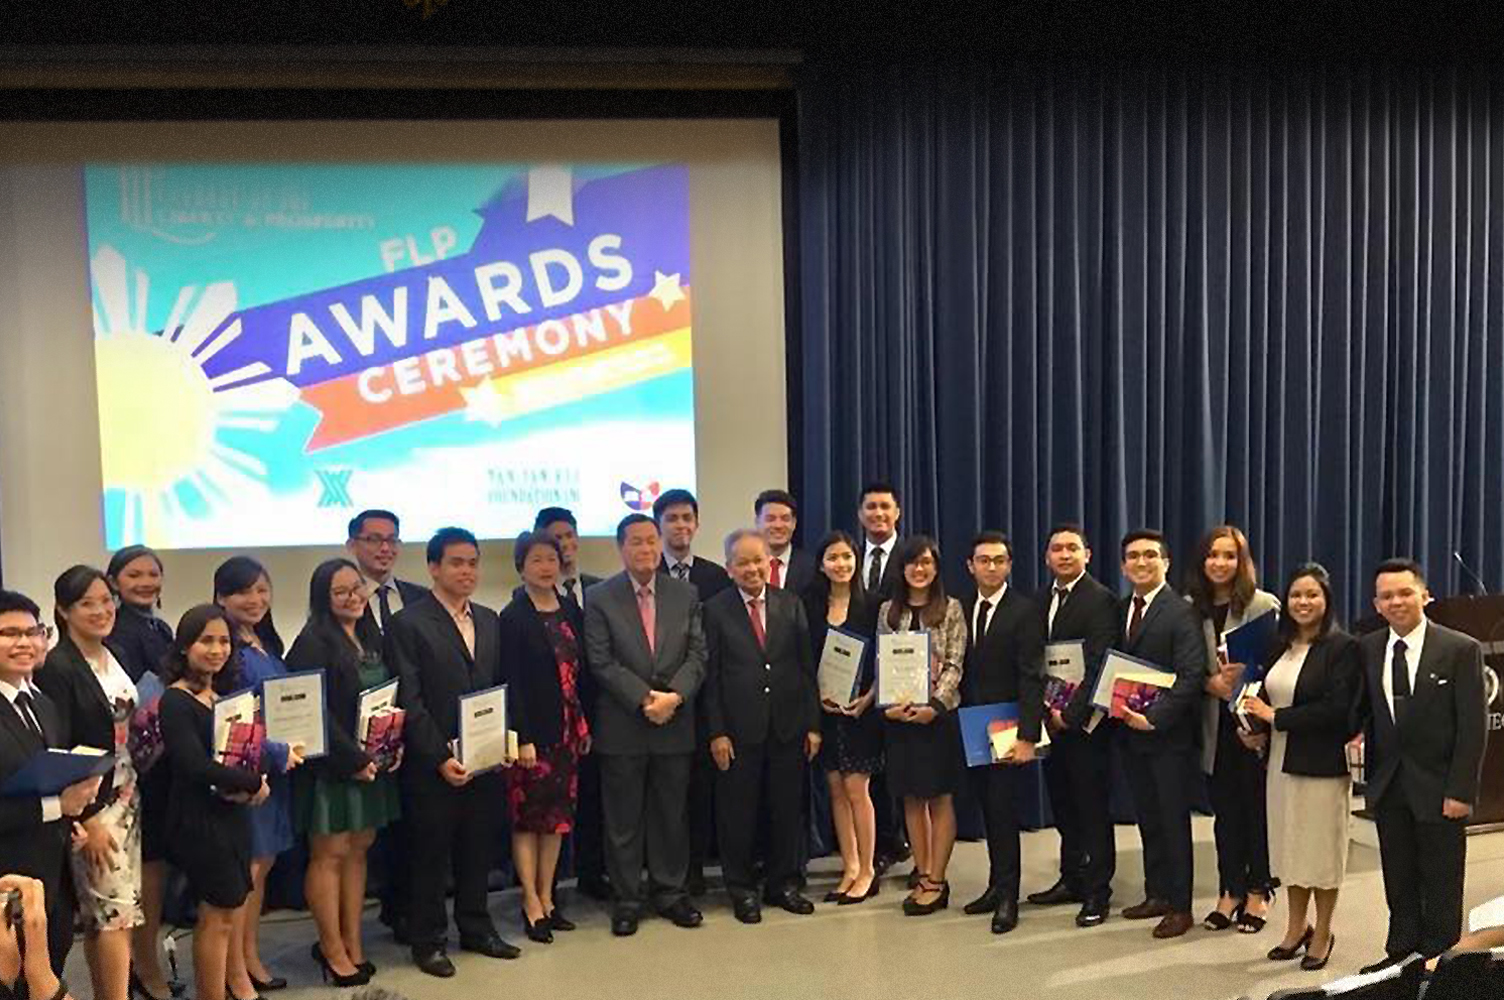 The FLP Awards 21 Law Scholarships and Declares Winners in Dissertation Contest